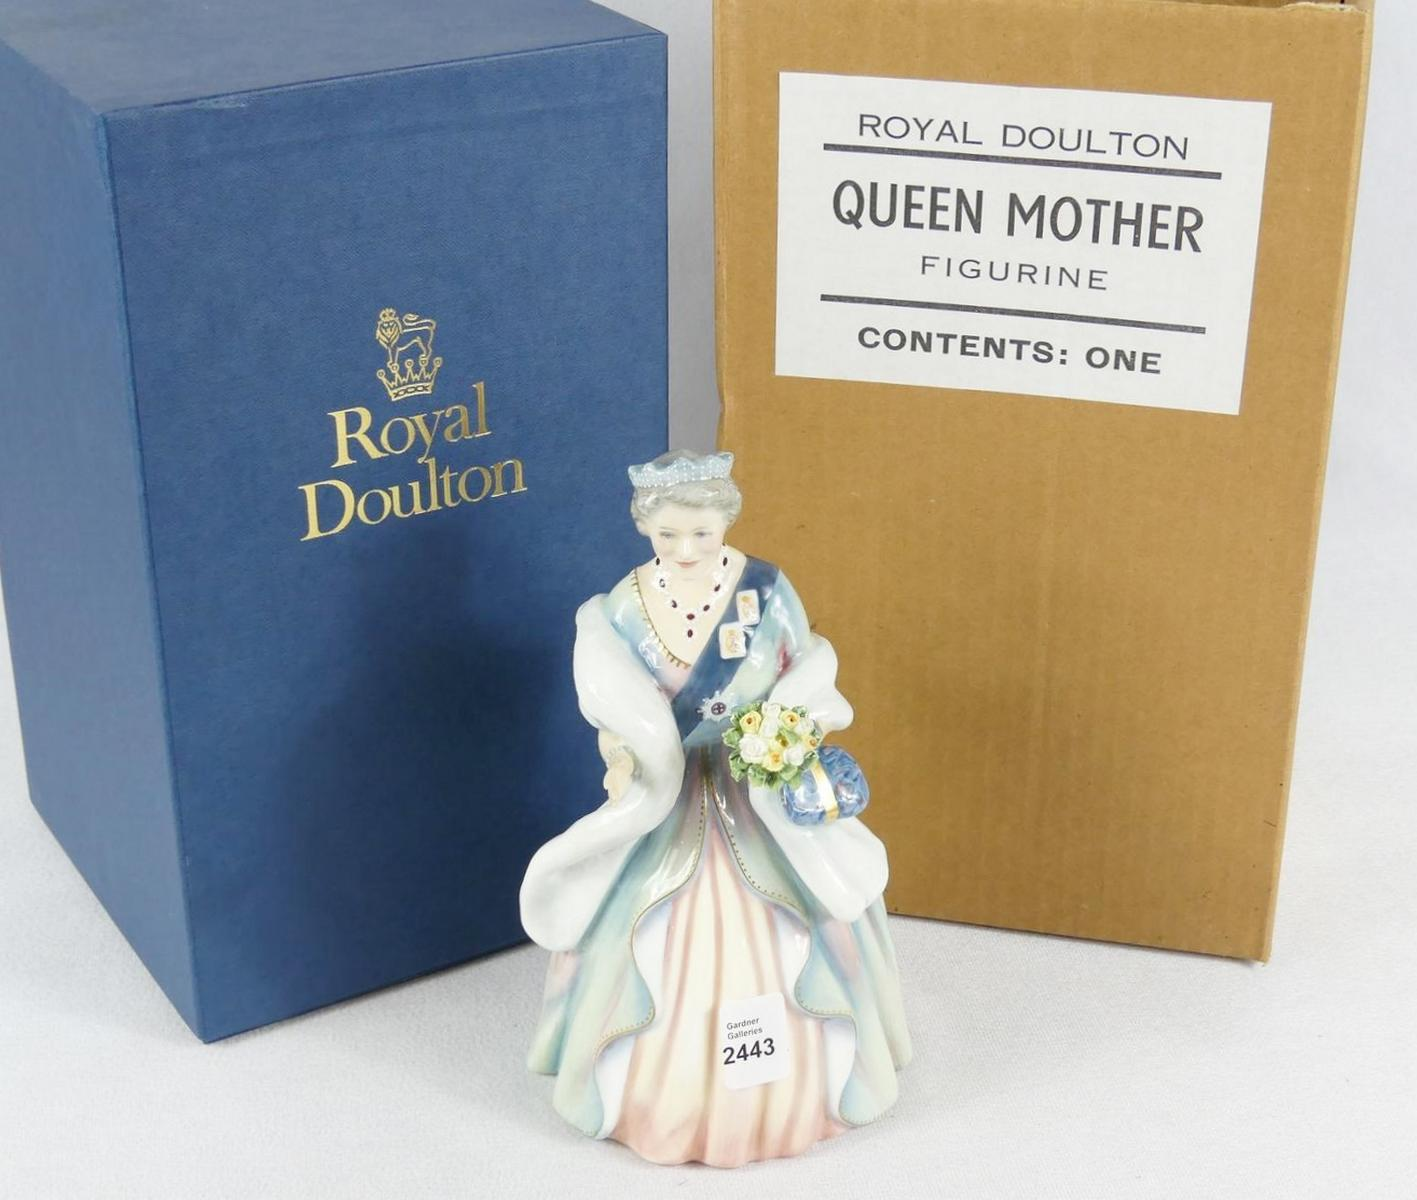 LIMITED EDITION DOULTON FIGURINE